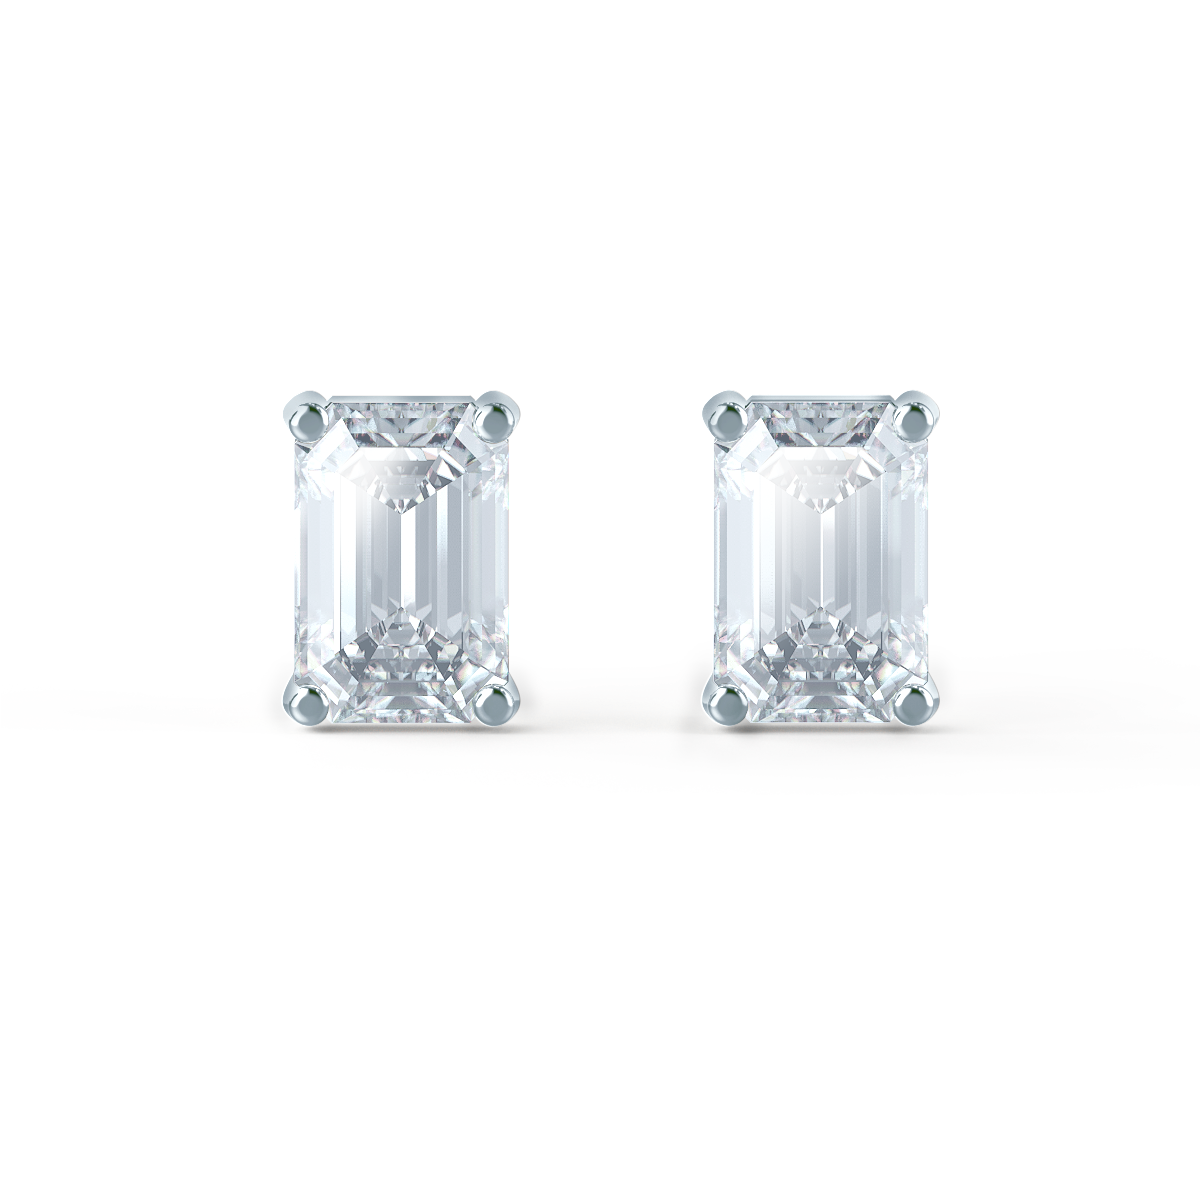 Lily Arkwright Earrings AVIANA - Charles & Colvard Moissanite 18k White Gold Emerald Stud Earrings